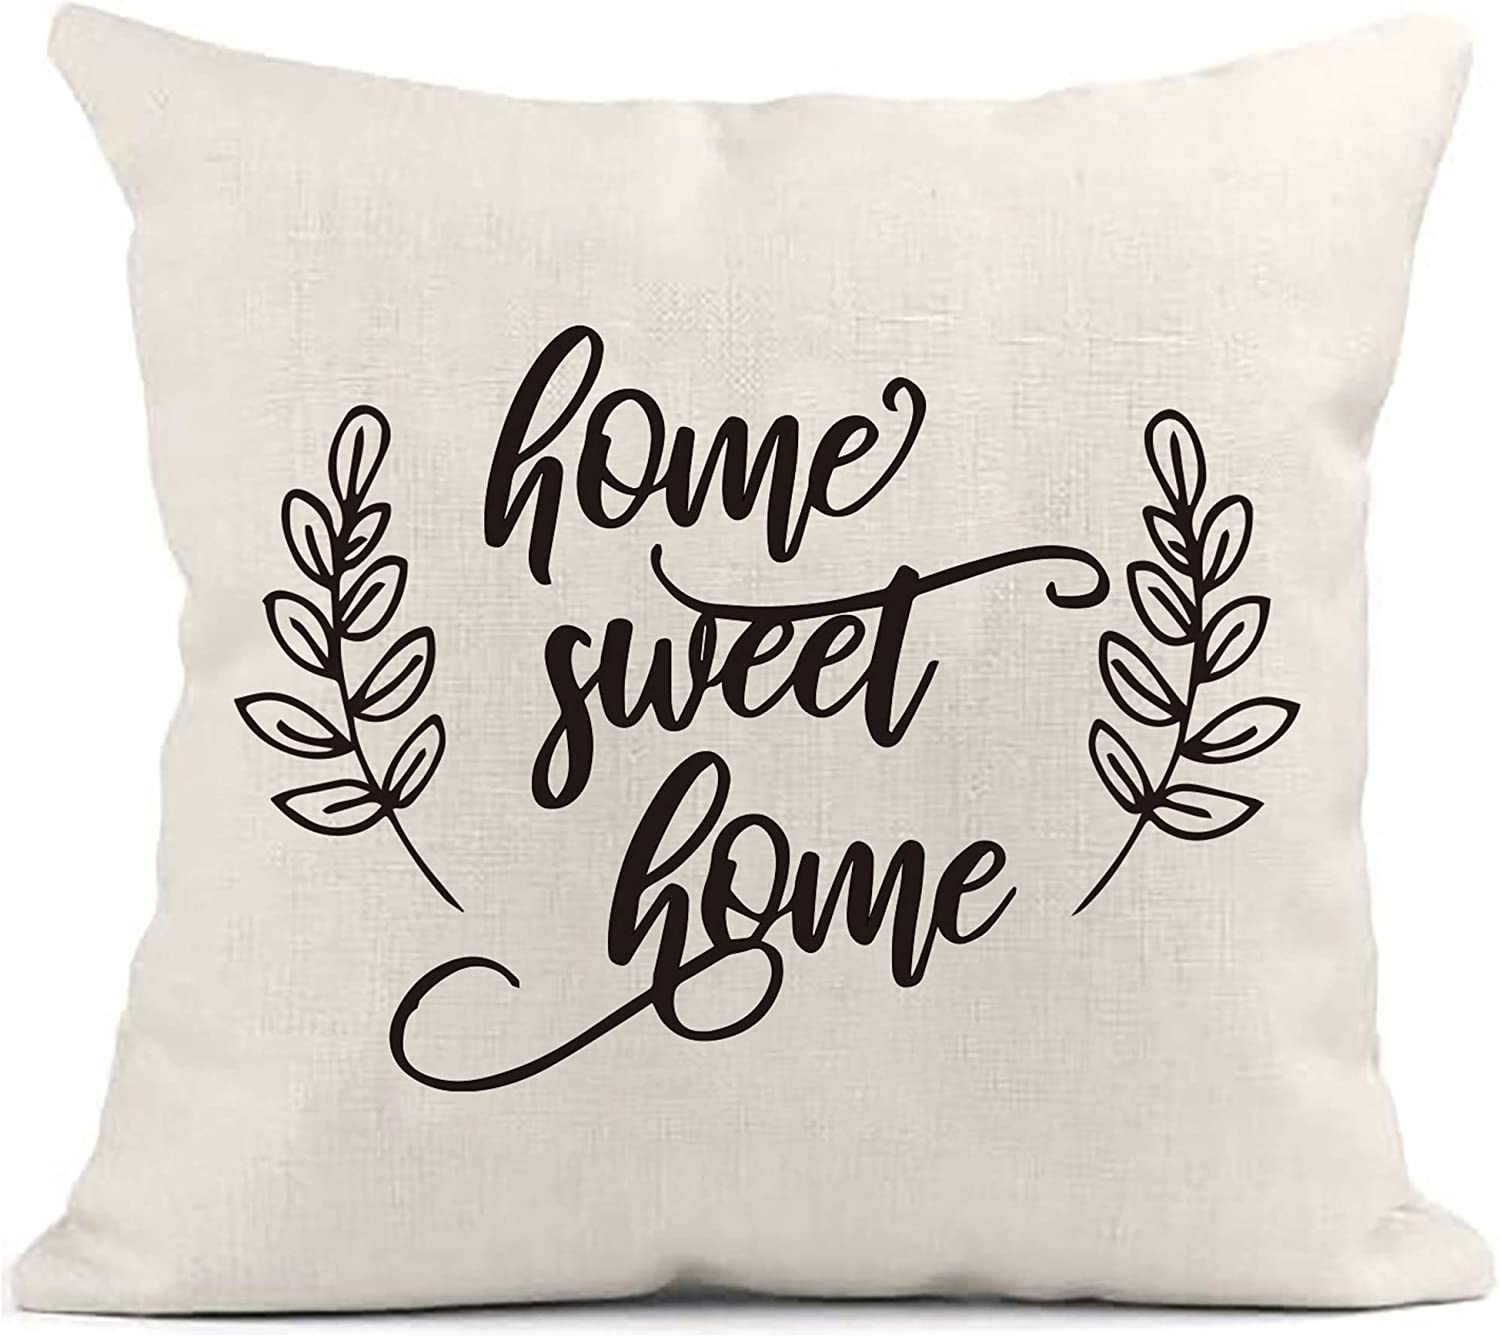 MayAvenue Home Sweet Home Cotton Linen Square Throw Pillow Case Decorative Cushion Cover Pillowcase Sofa for Friend Housewarming New Home Gift, 18 x 18 inche